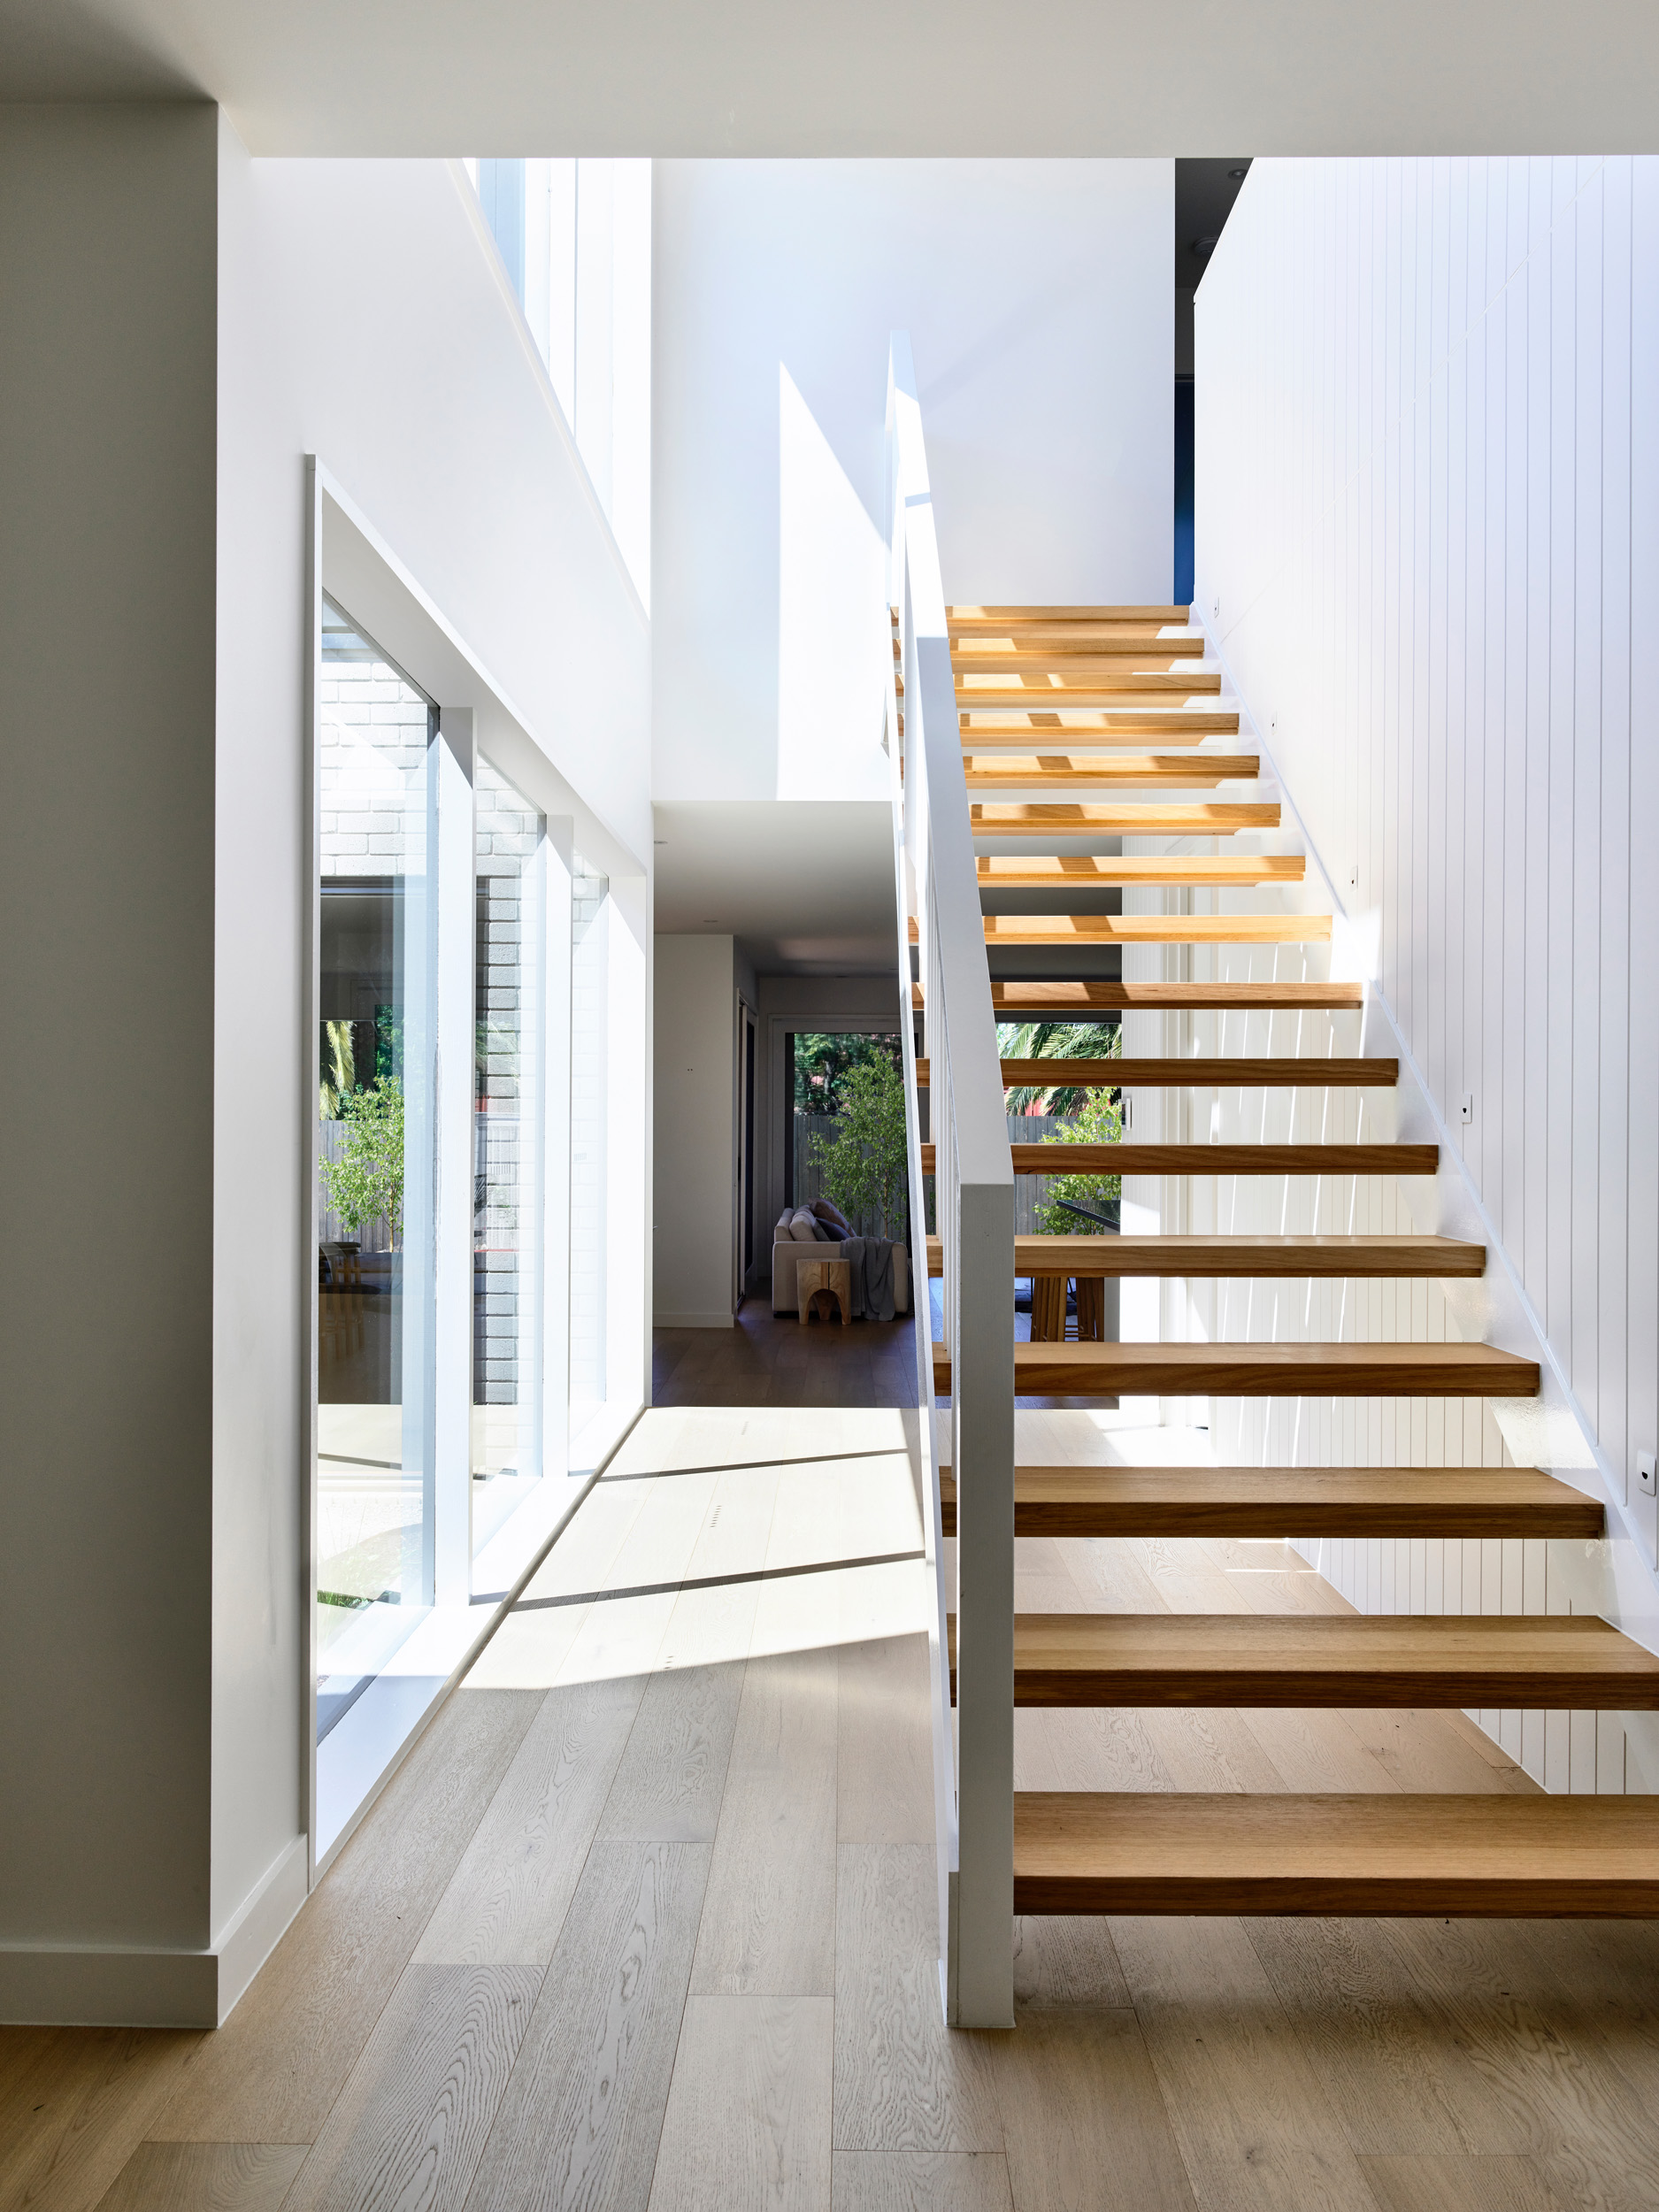 Northcote House, InForm, The Local Project, Australian Architecture and Design (21)